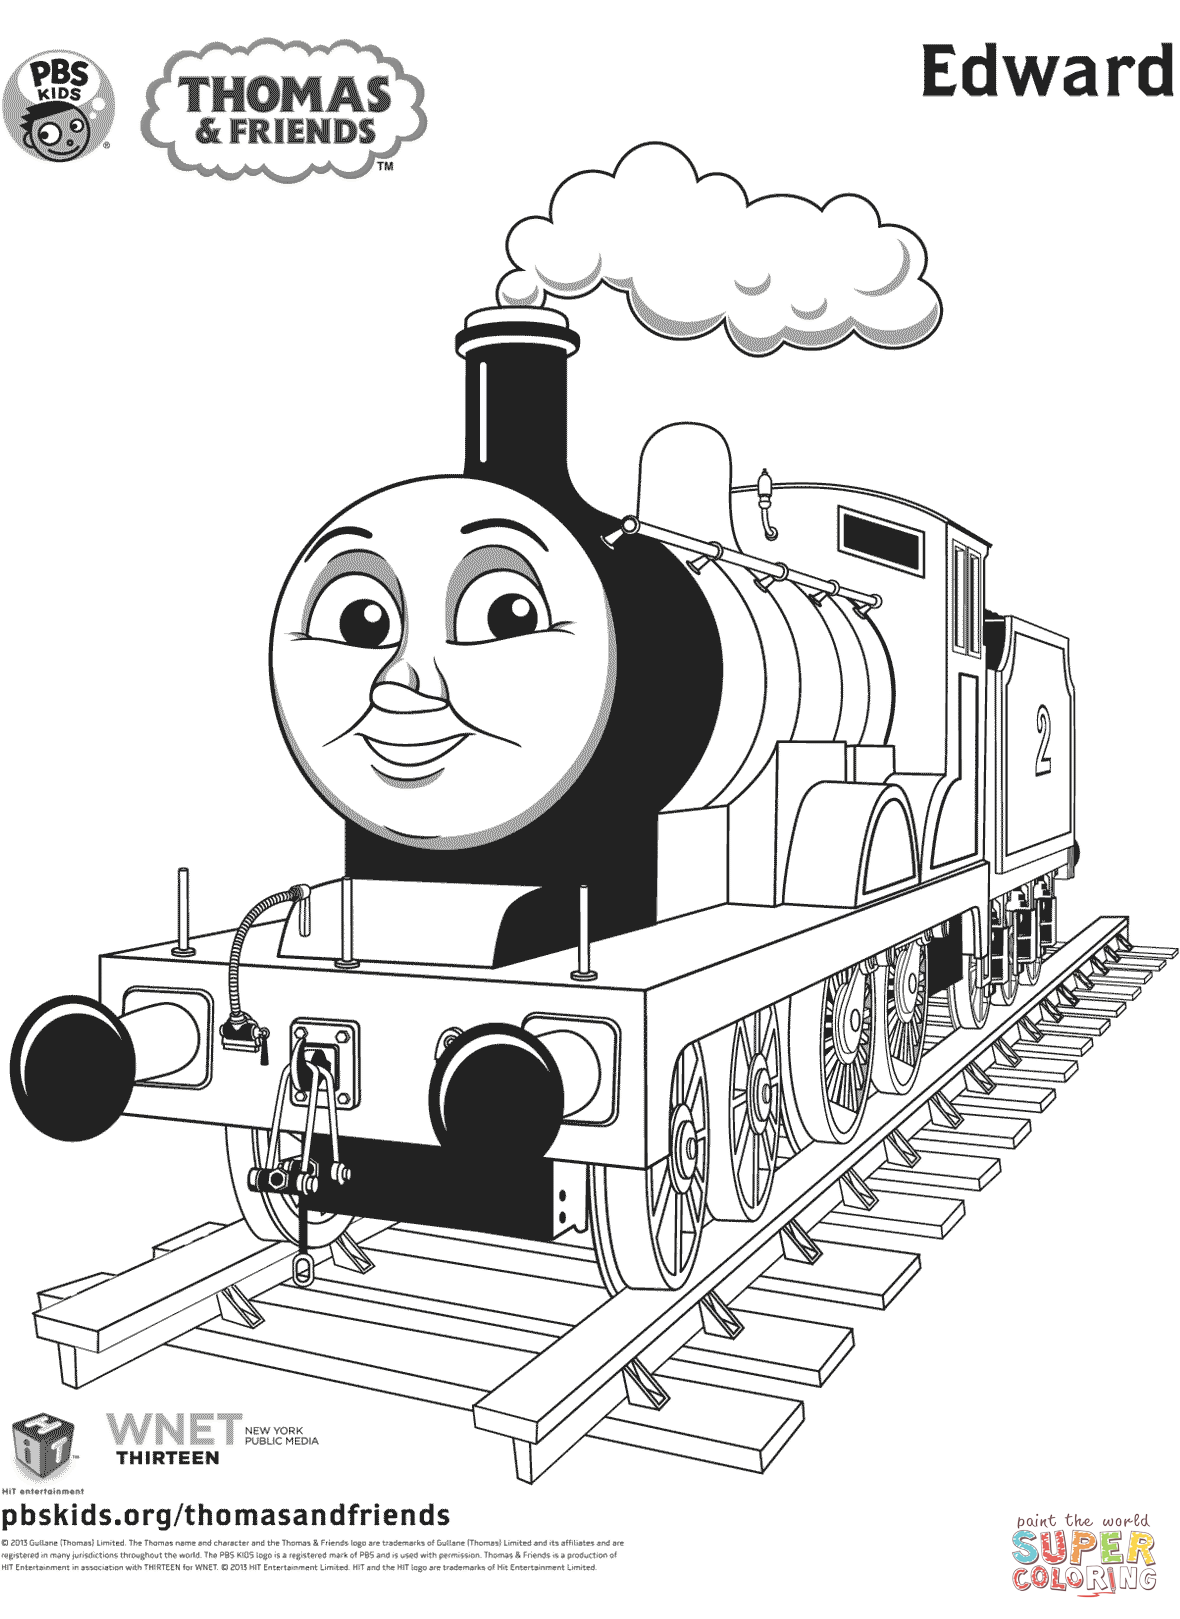 thomas and friends coloring sheets cartoon train coloring pages at getcoloringscom free coloring friends sheets thomas and